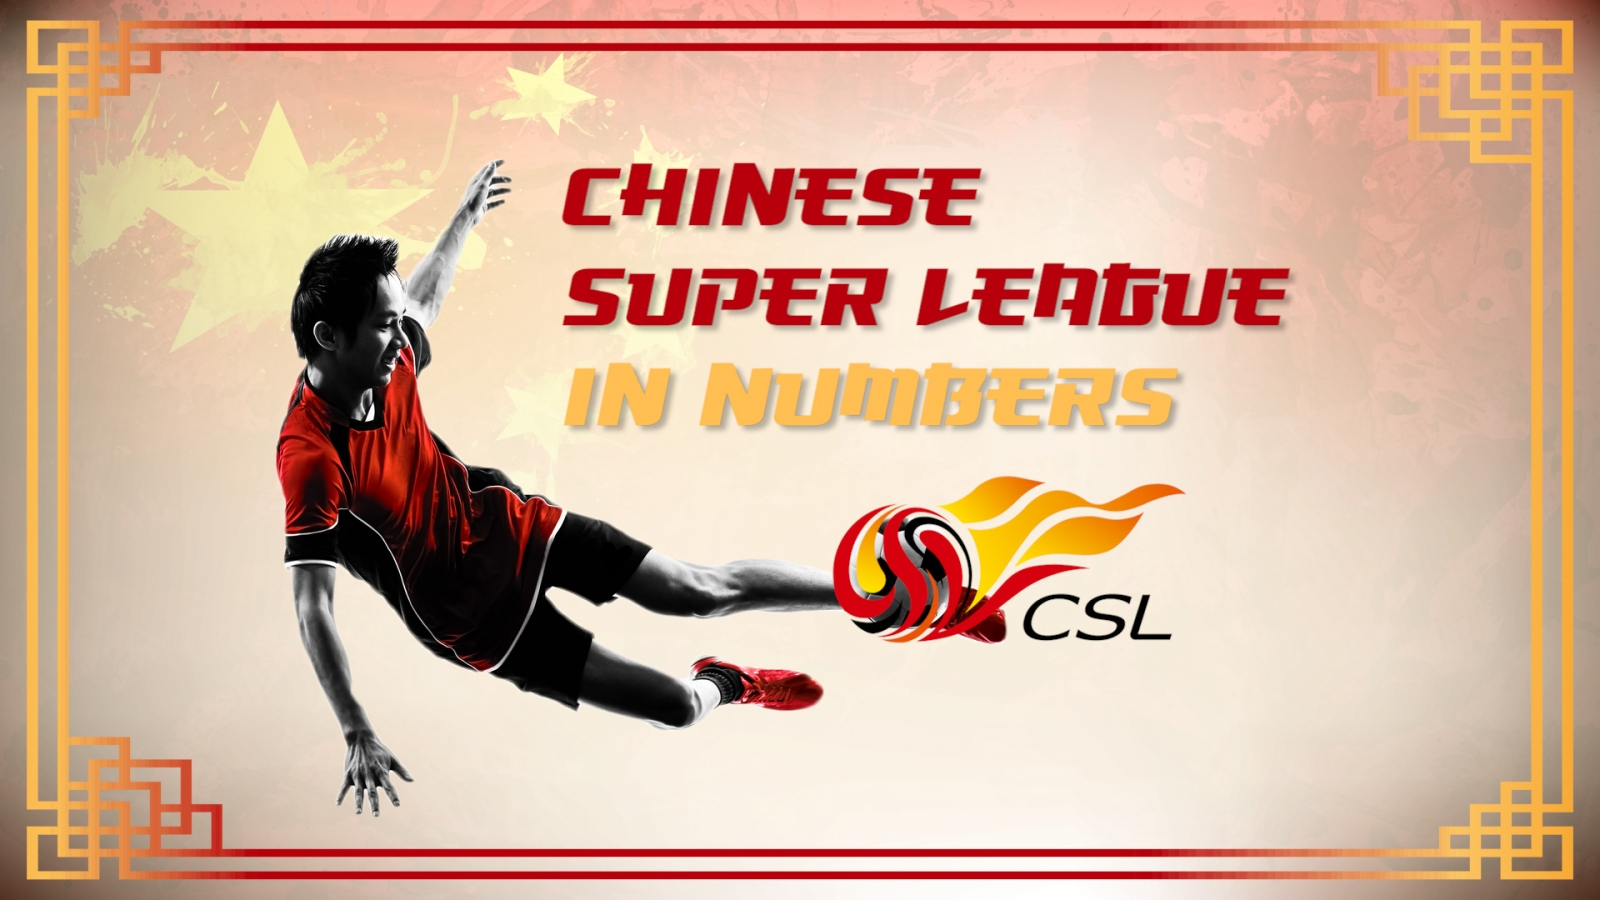 Chinese Super League in numbers